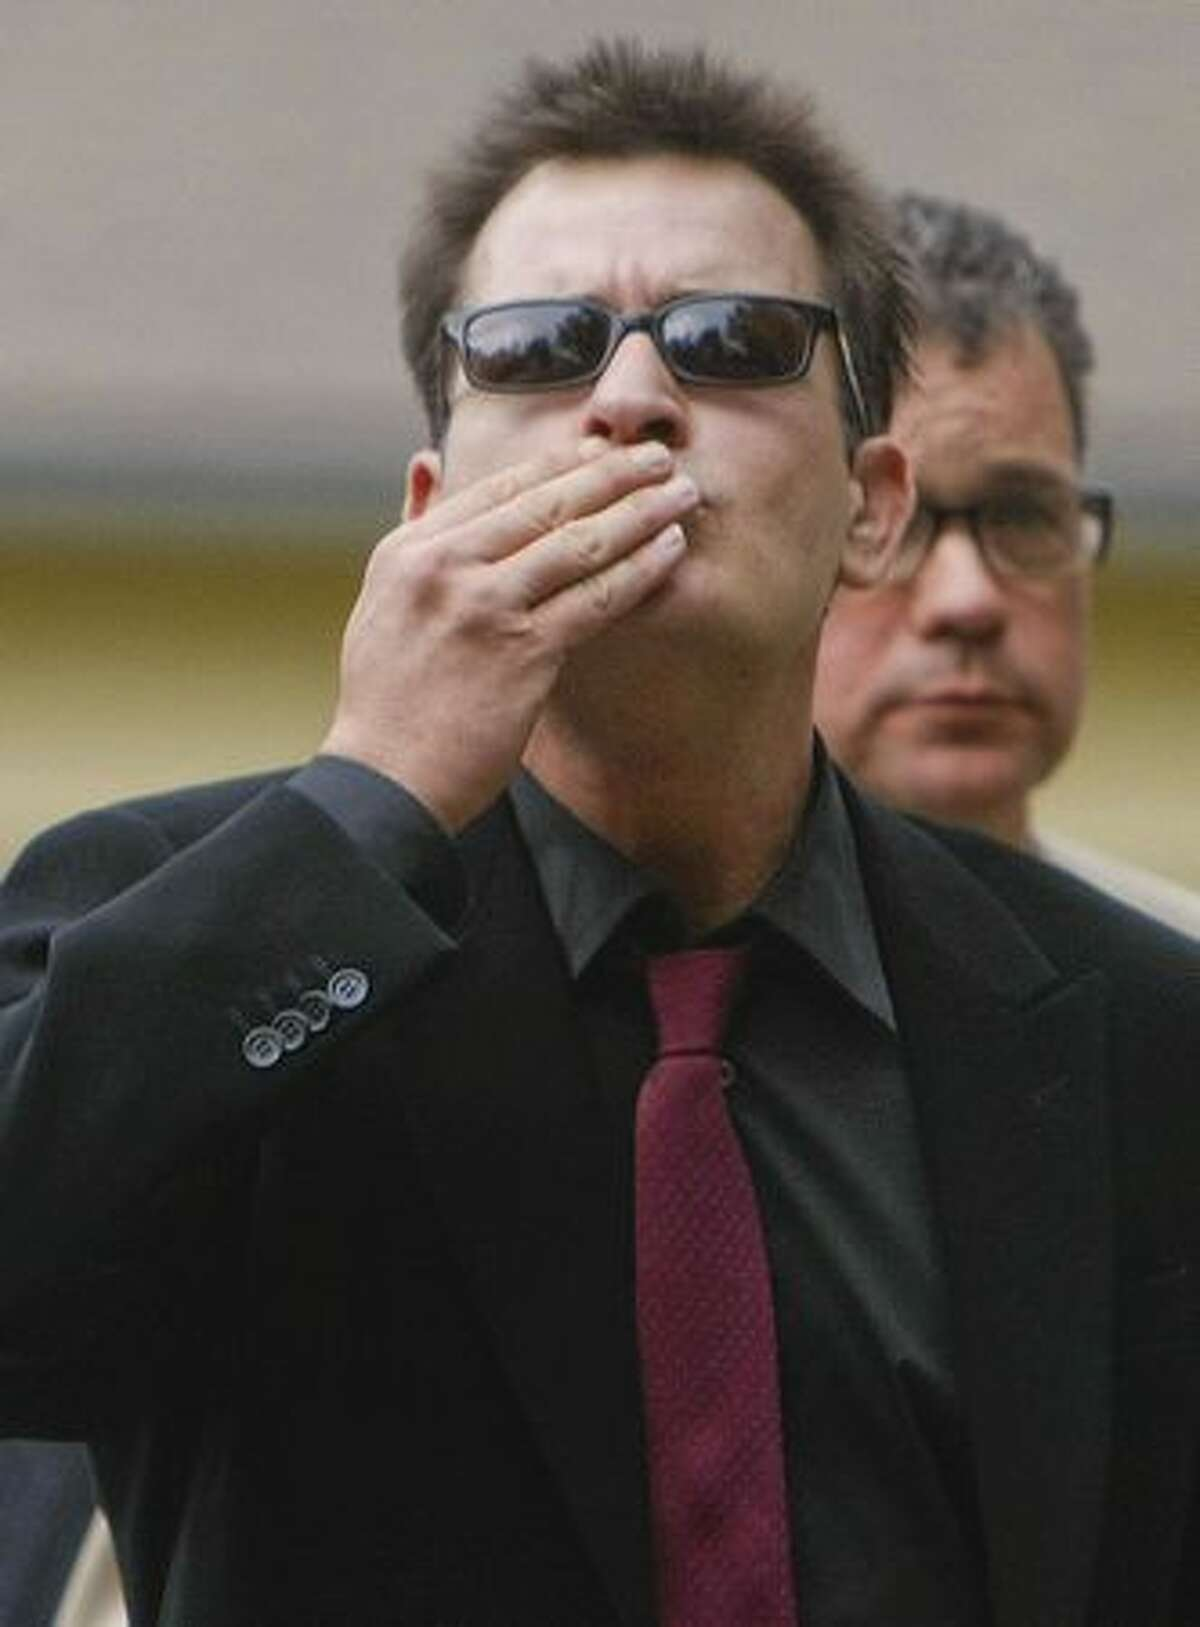 Charlie Sheen arrives at the Pitkin County Courthouse on August 2, 2010 in Aspen, Colorado.